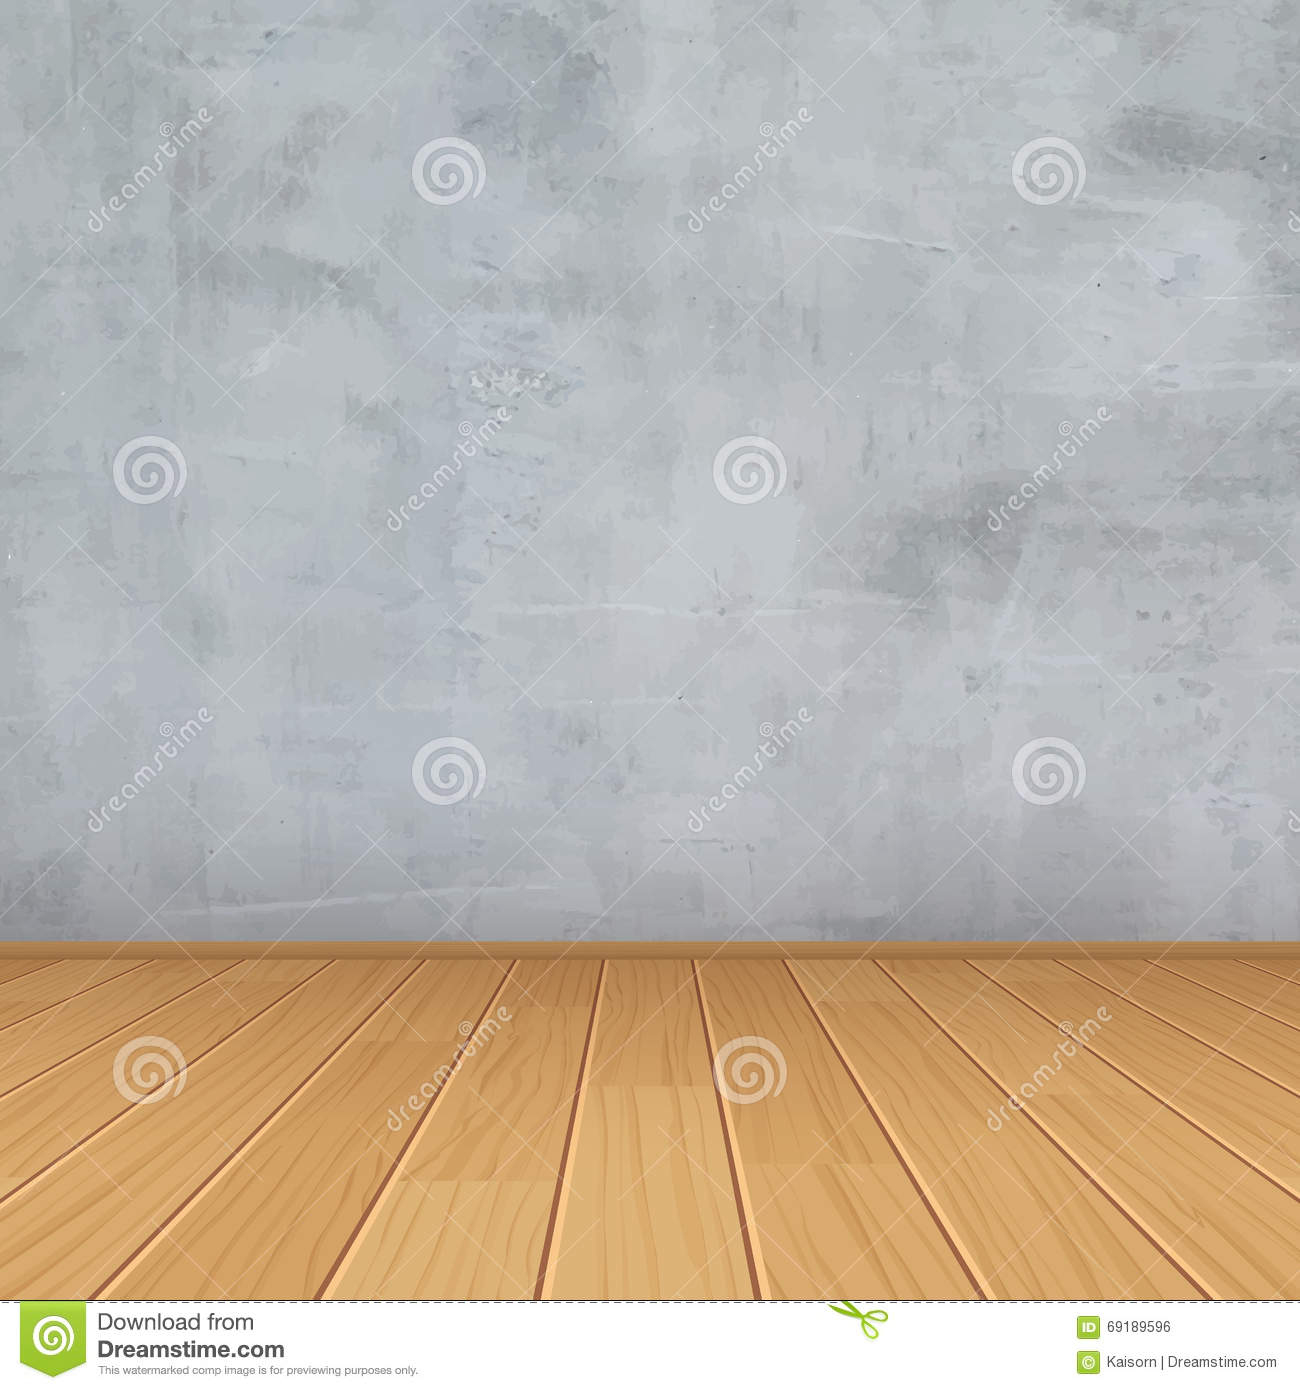 Grunge Interior Concrete Wall Wood Floor Room For